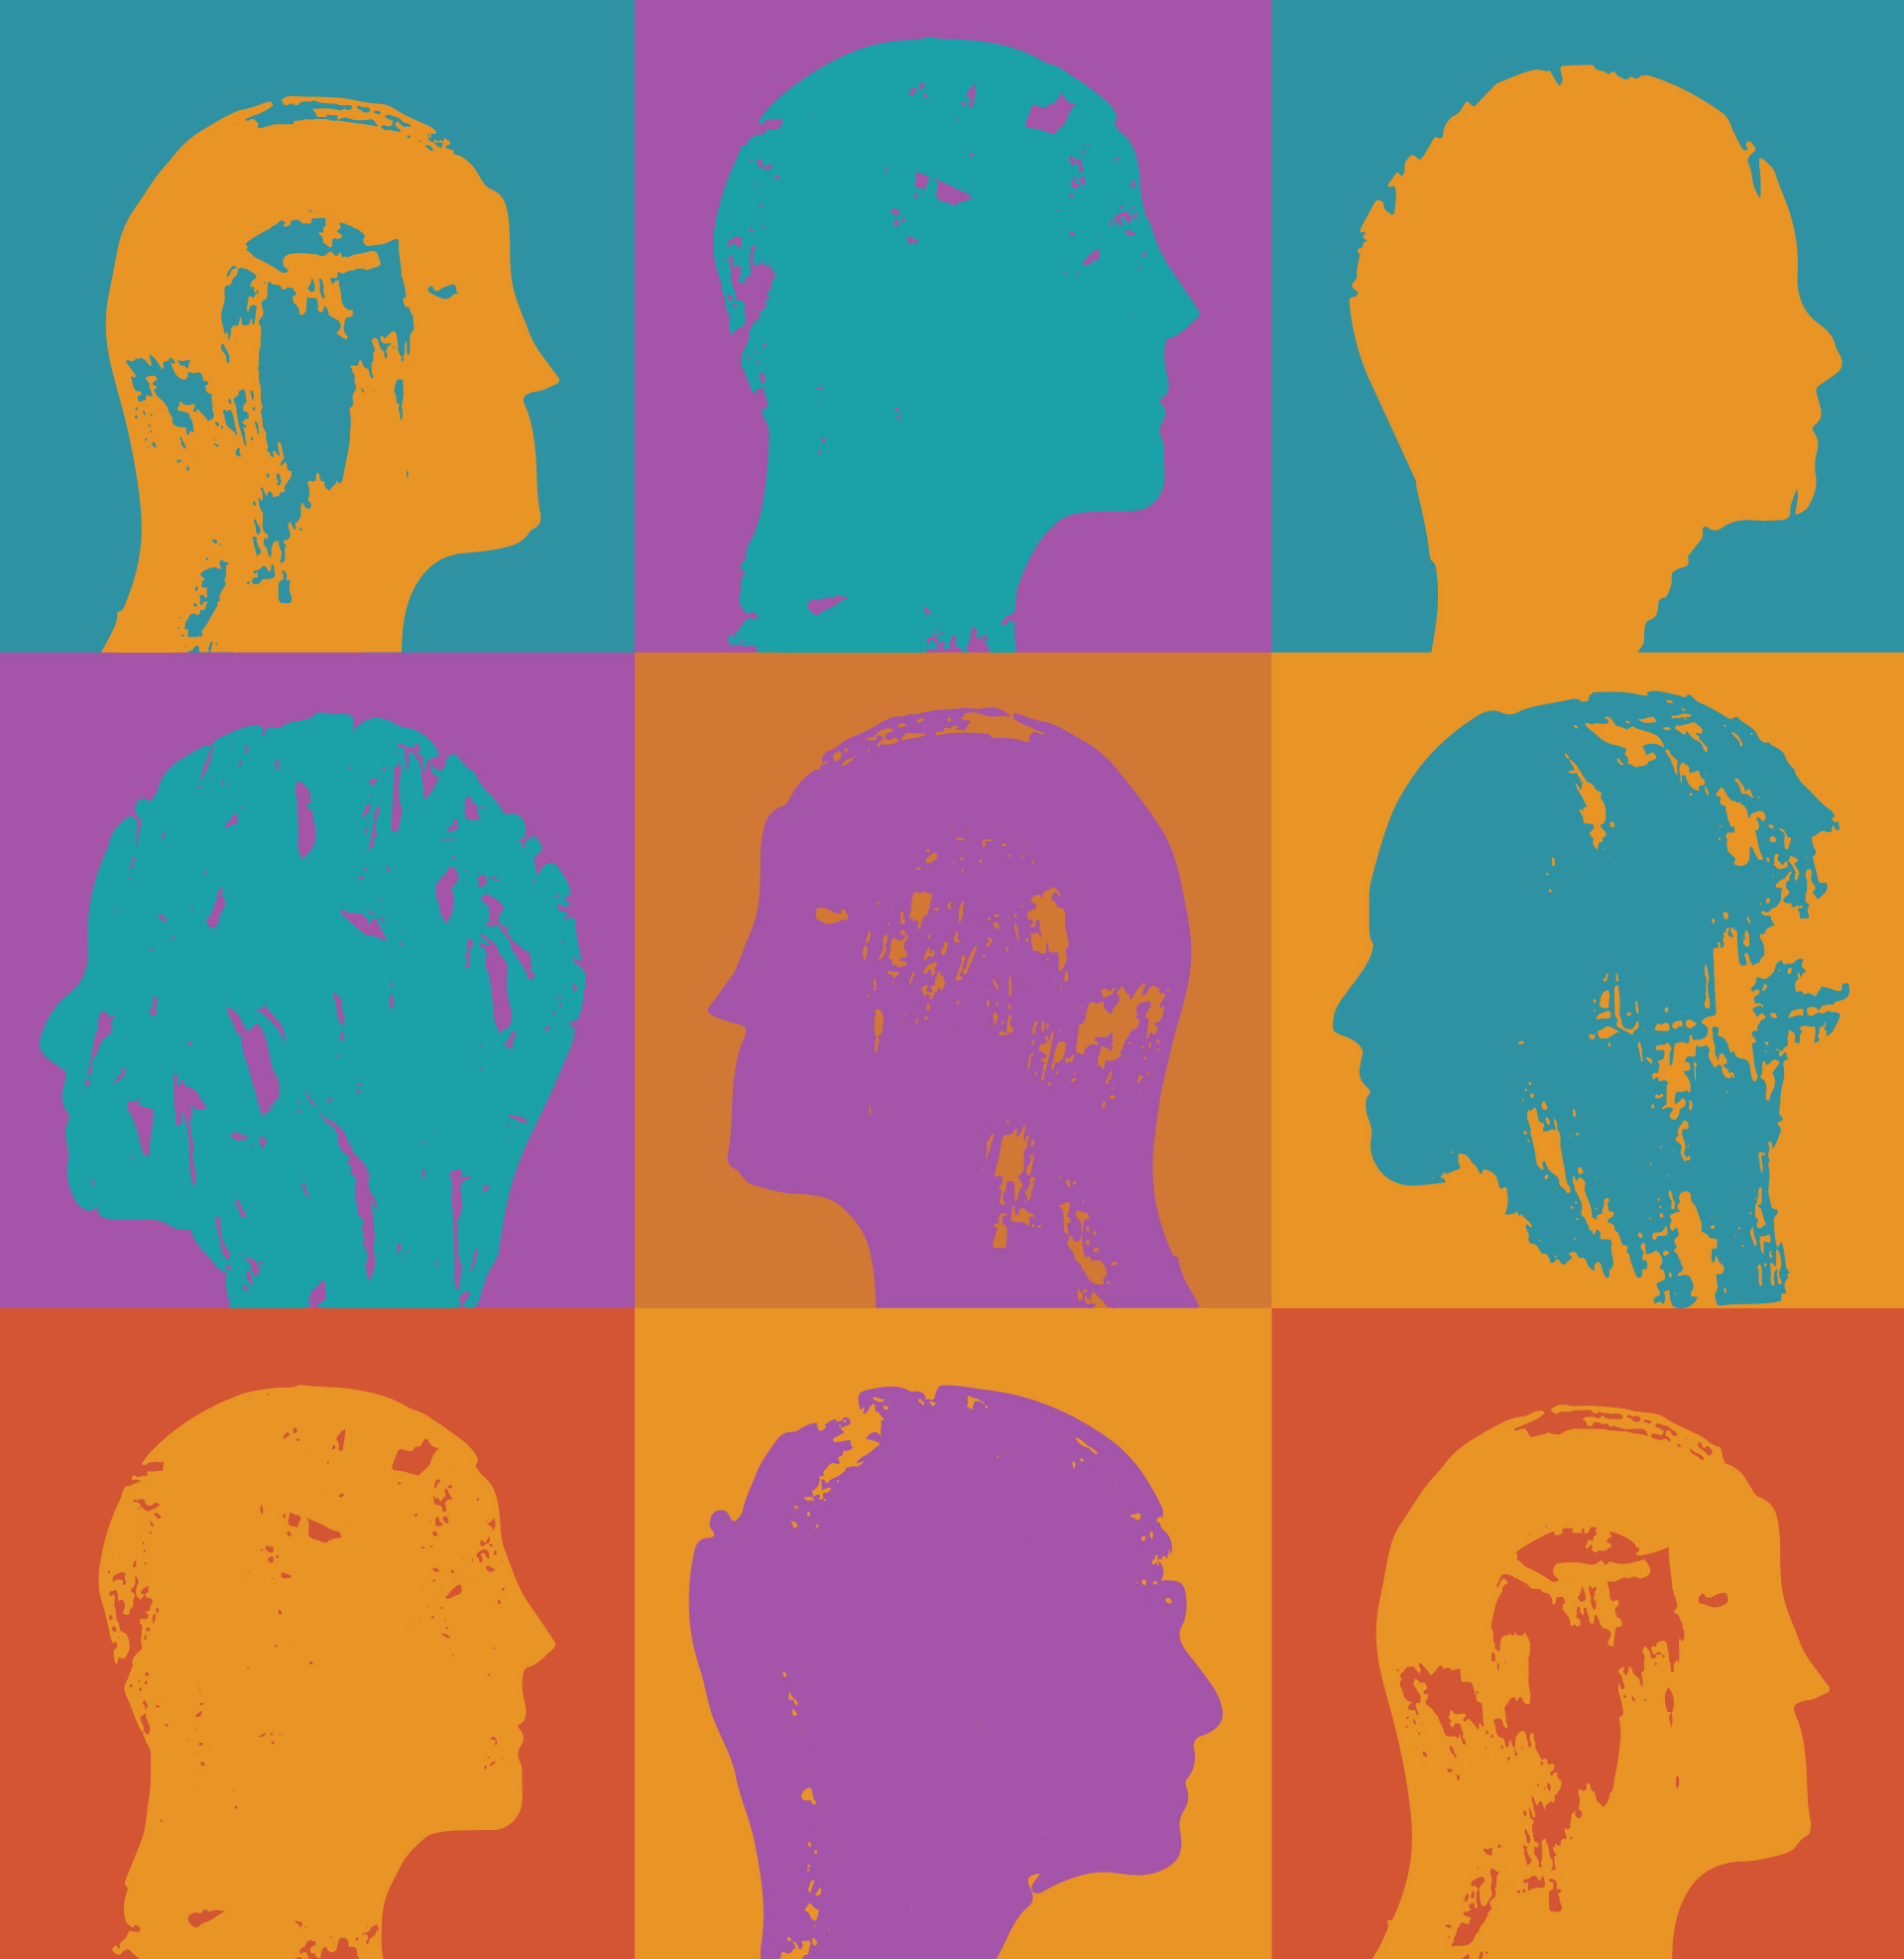 color squares with images of people